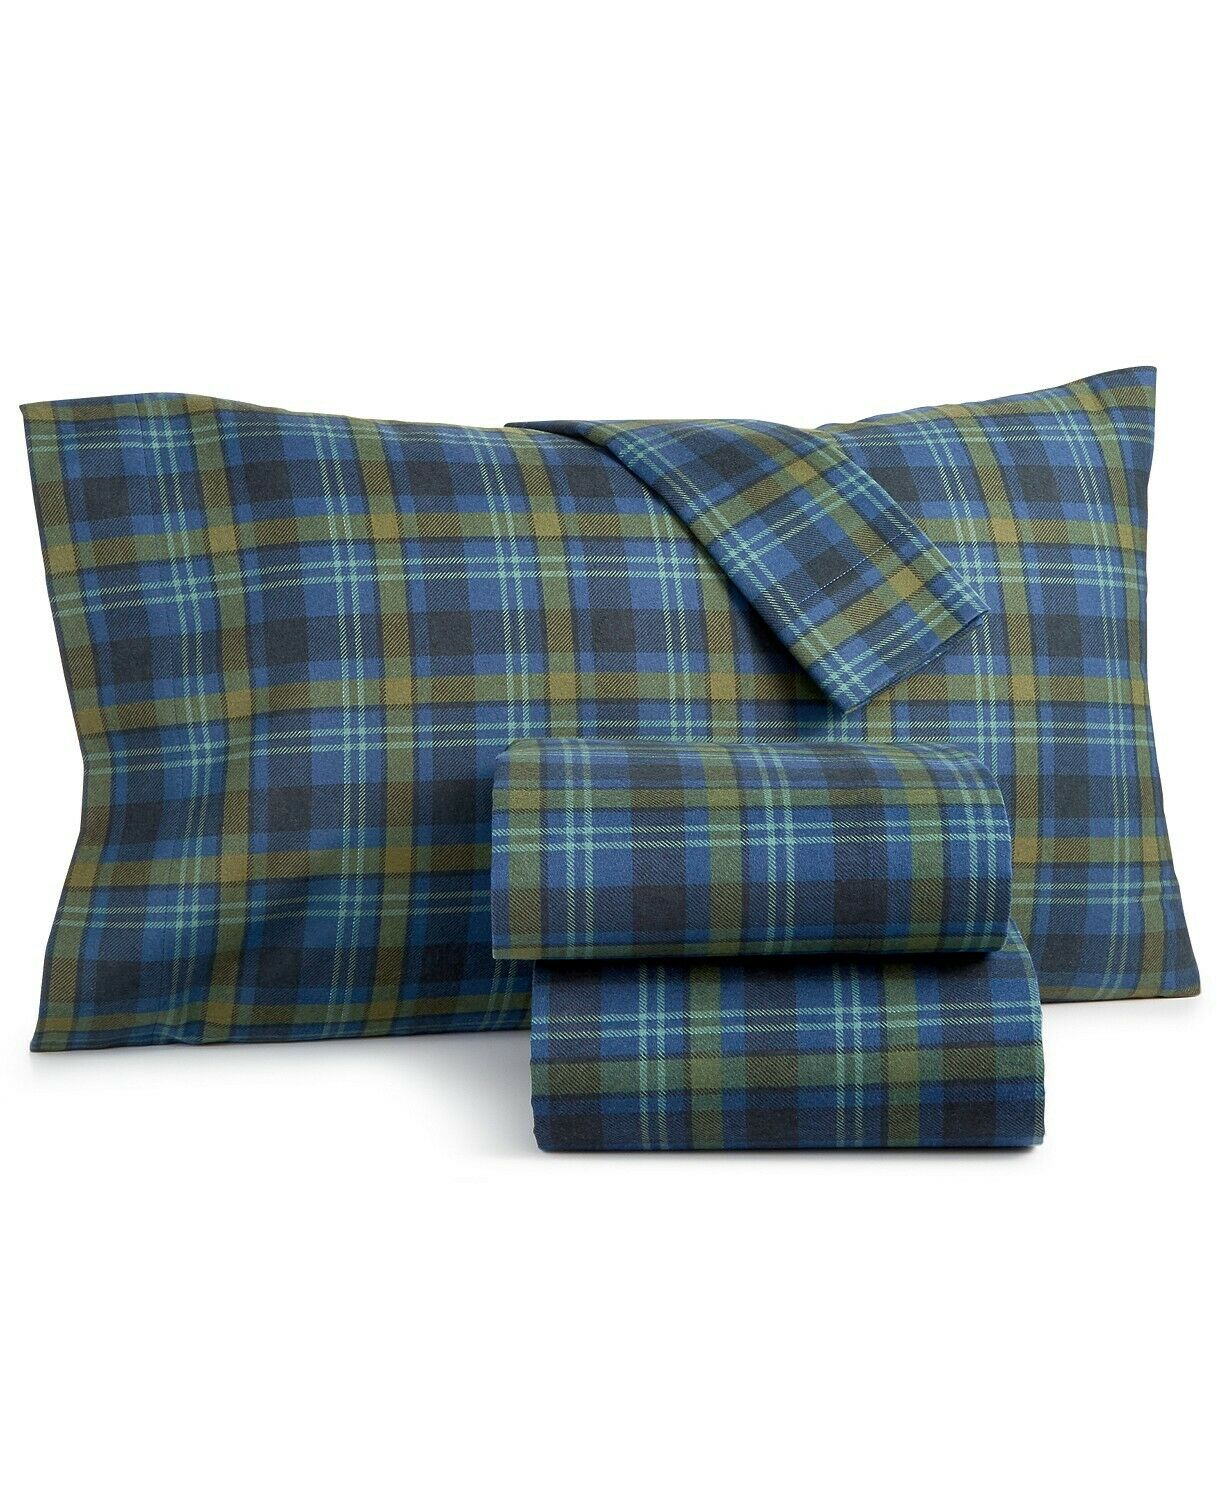 Martha Stewart Collection Markham Cotton 3-Pc. Plaid Flannel Twin Sheet Set